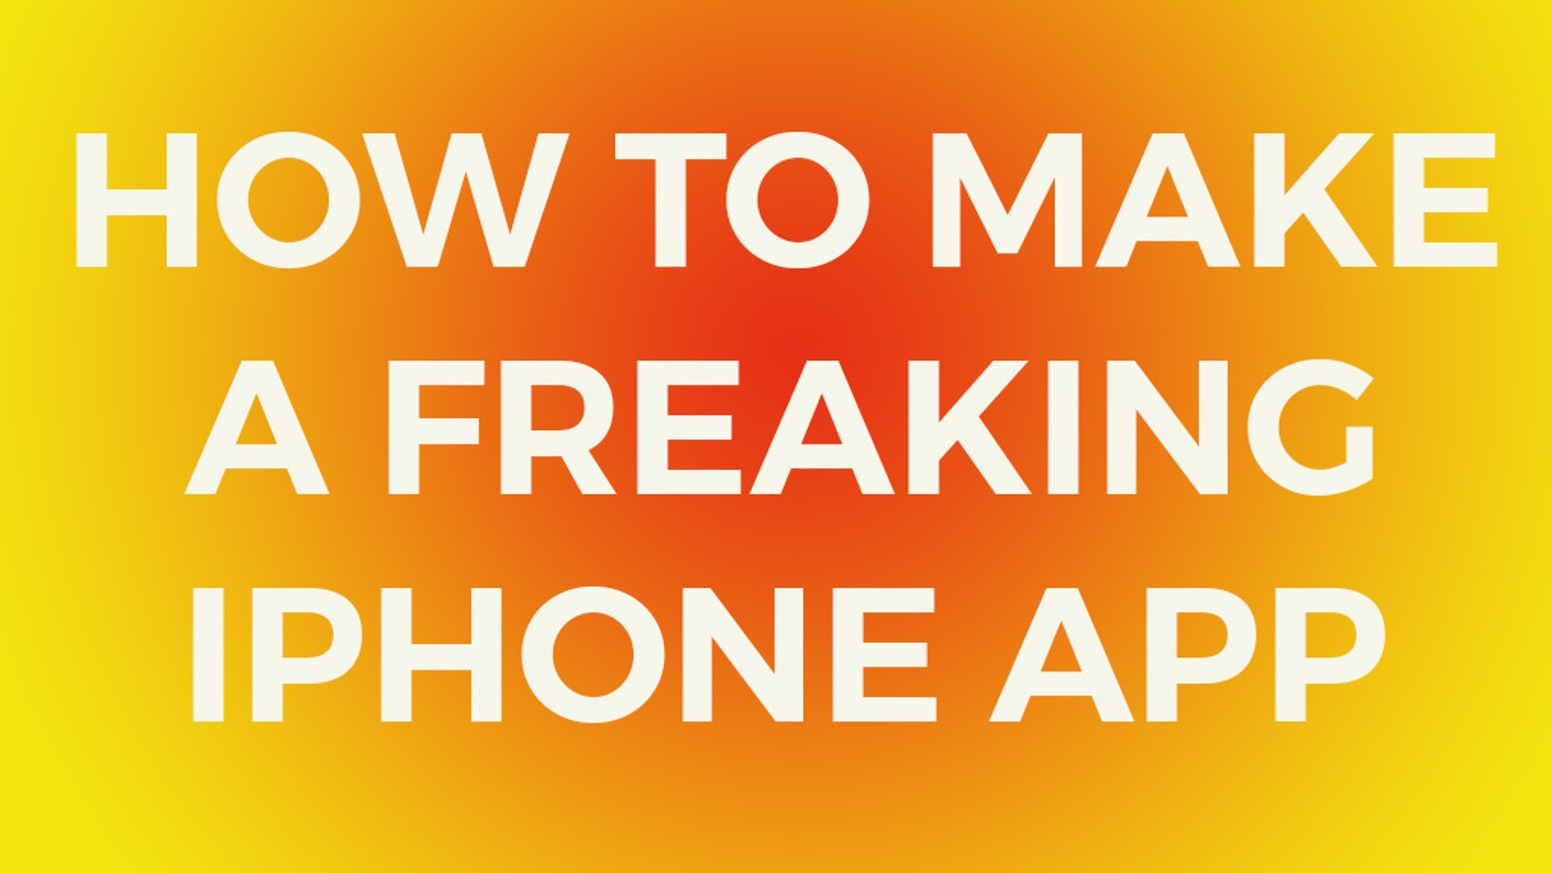 How to Make a Freaking iPhone App by Nick Walter — Kickstarter